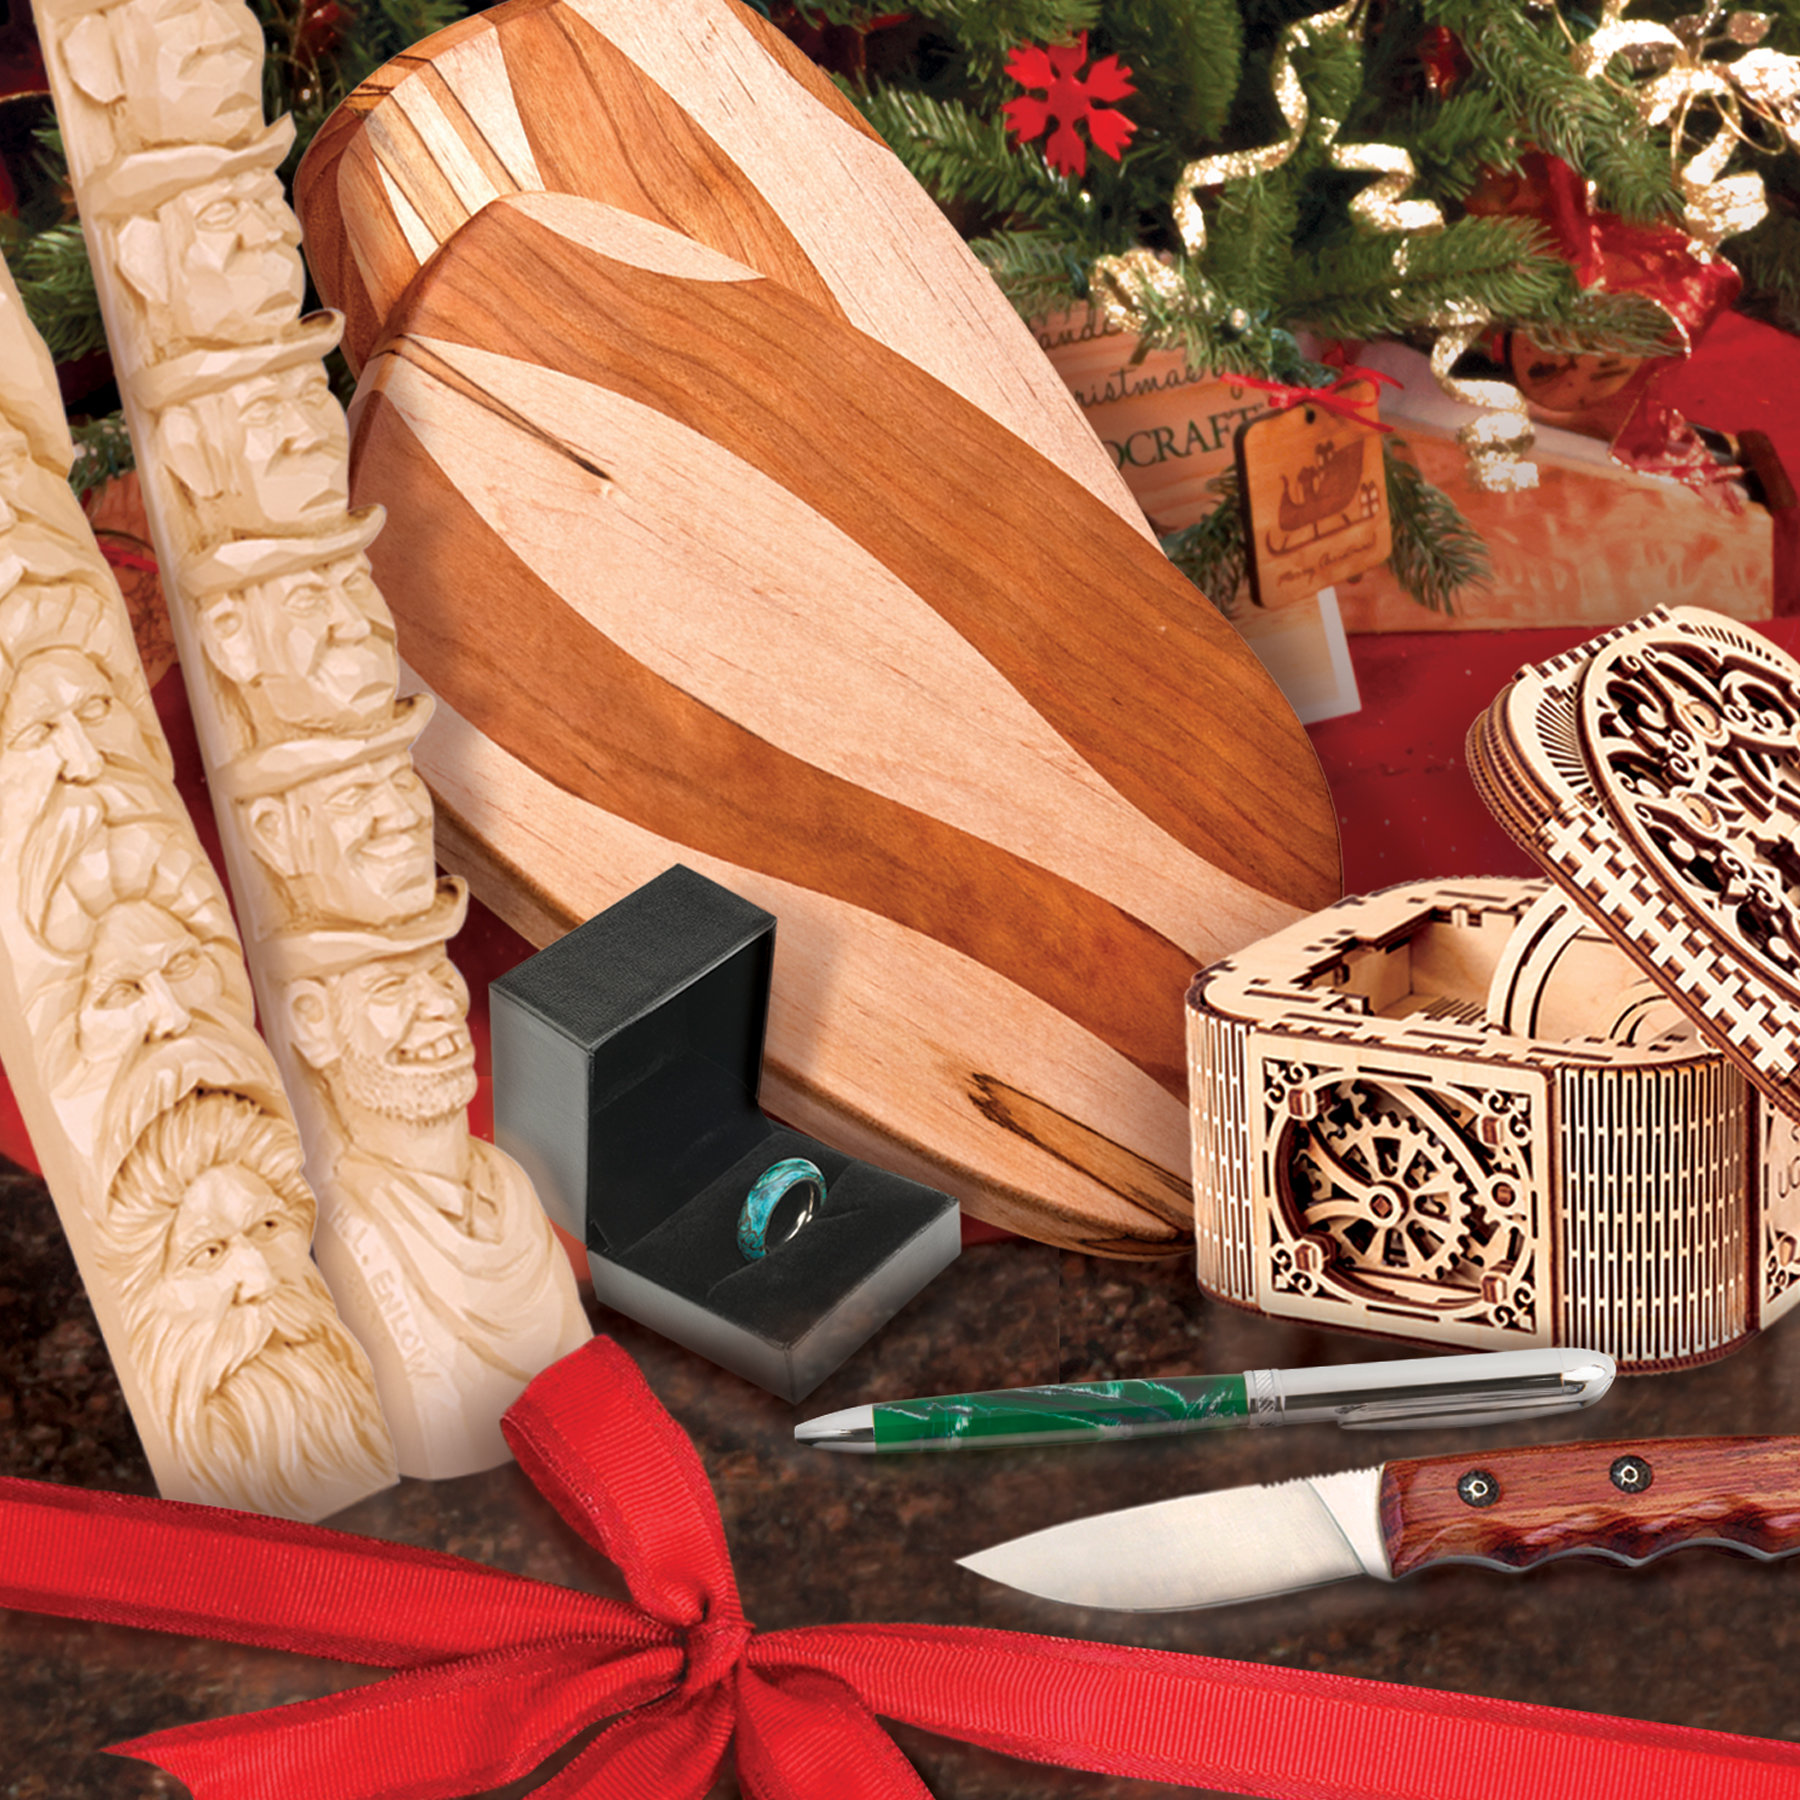 Handcraft Holiday Gifts This Year with Help from Woodcraft